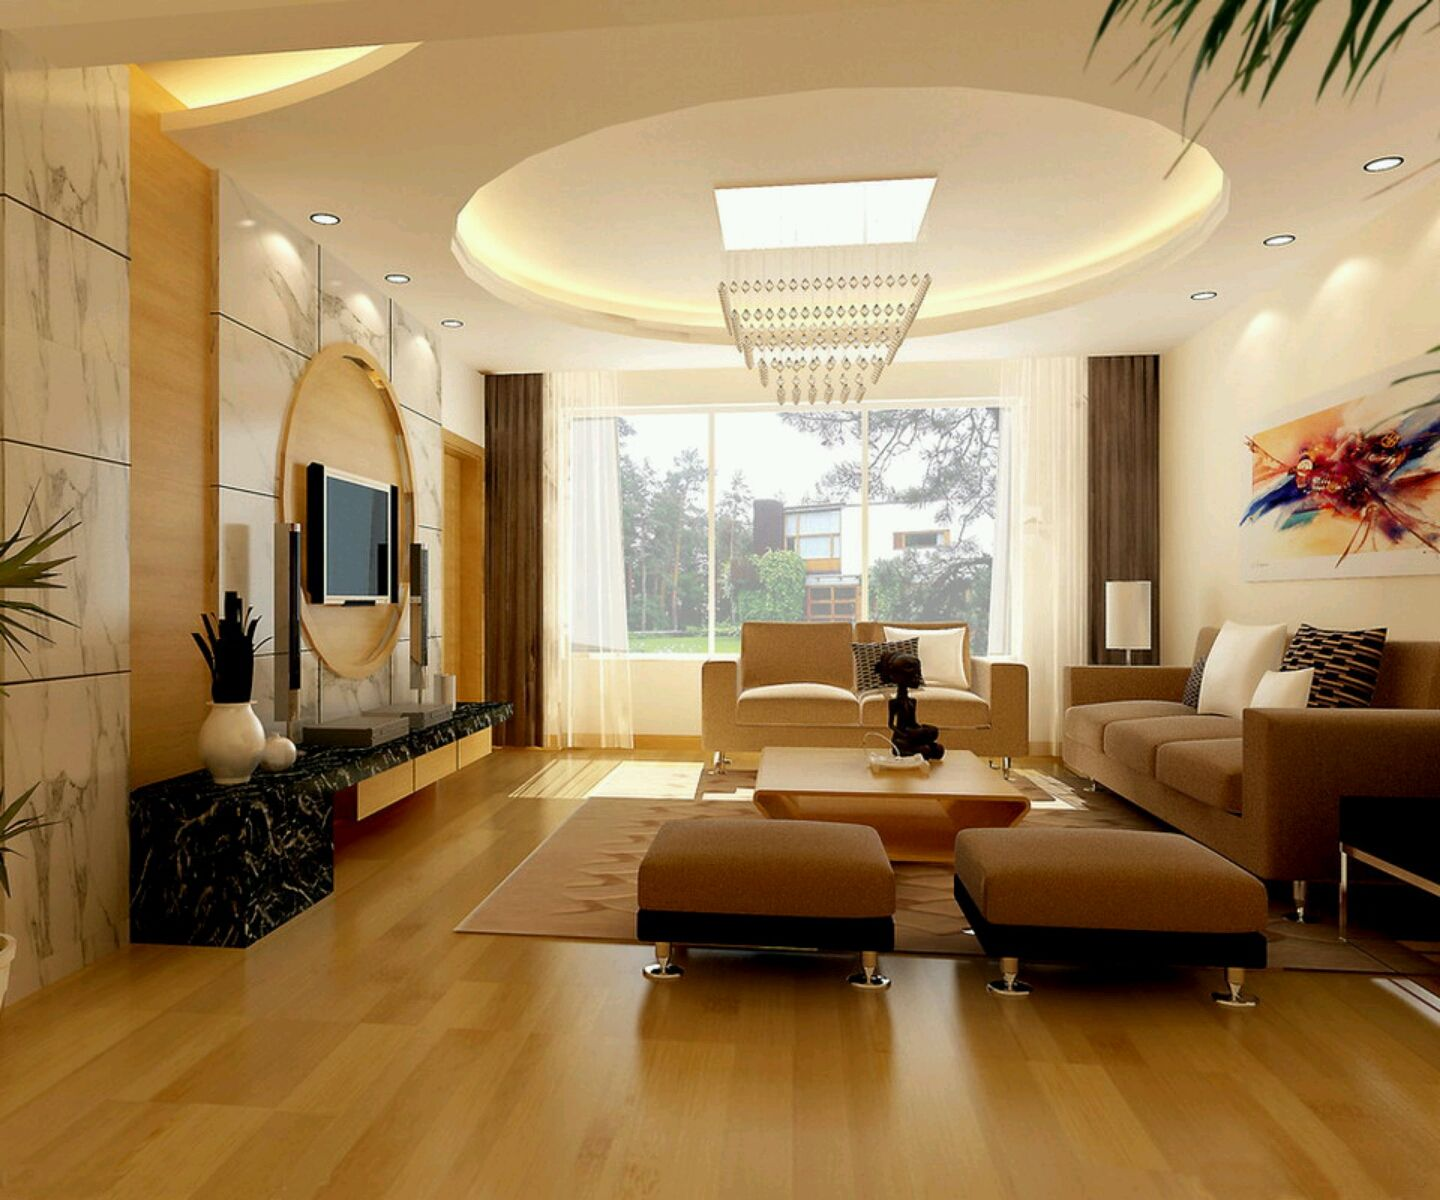 Wooden Ceiling Designs For Living Room Ceiling Designs For Your Living Room Pop Ceiling Design Front